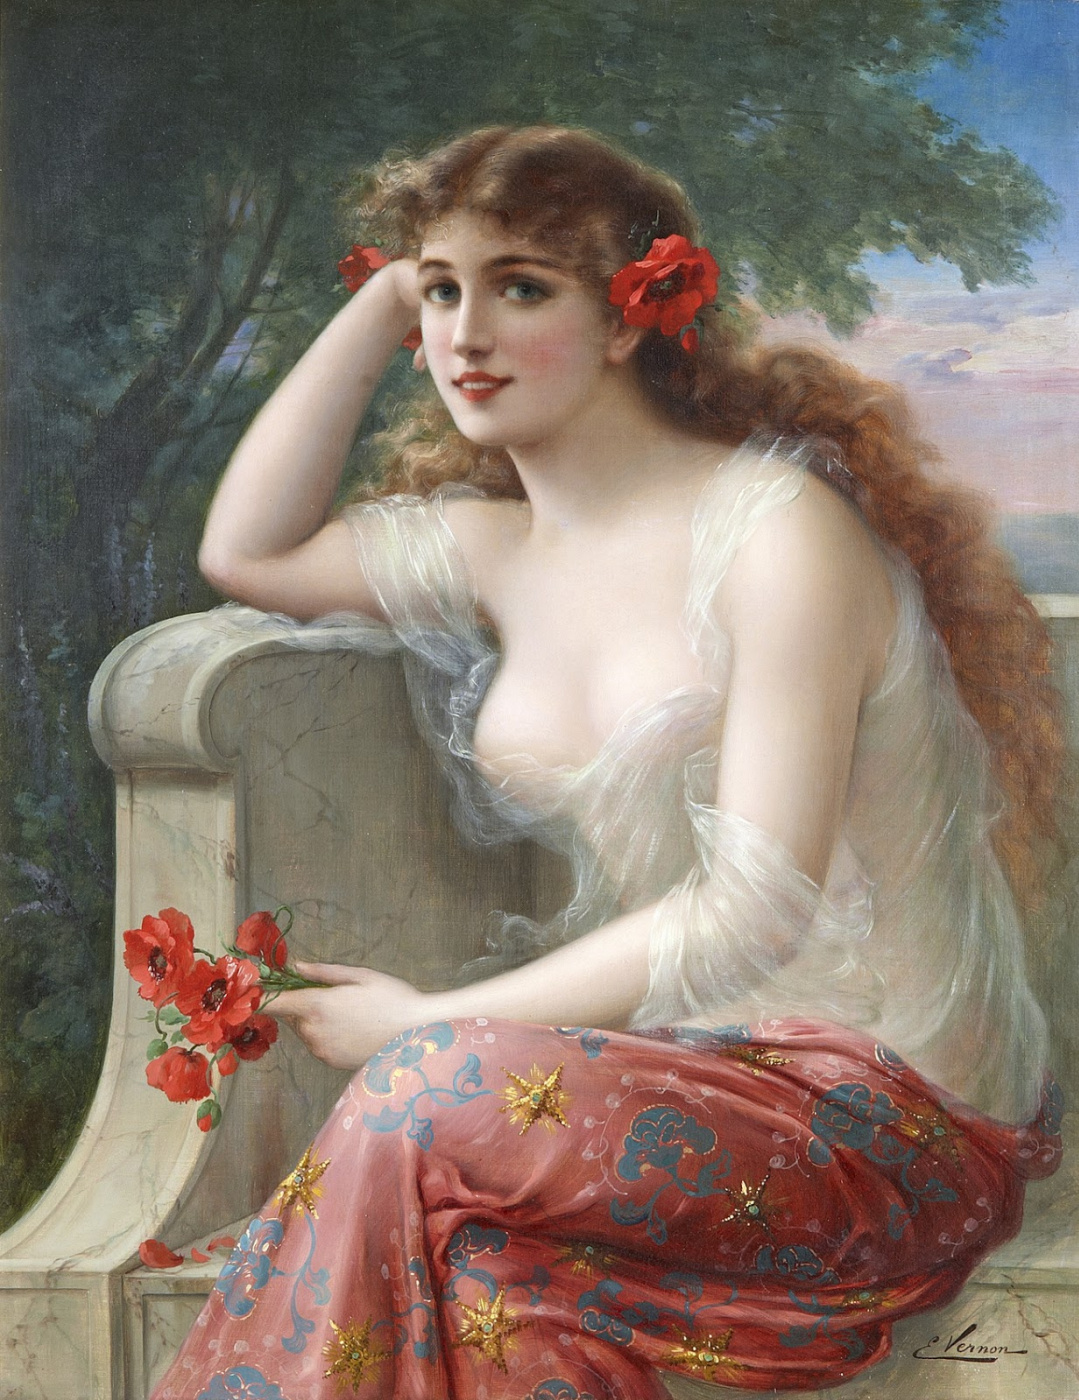 Emile Vernon. Young beauty with poppies.